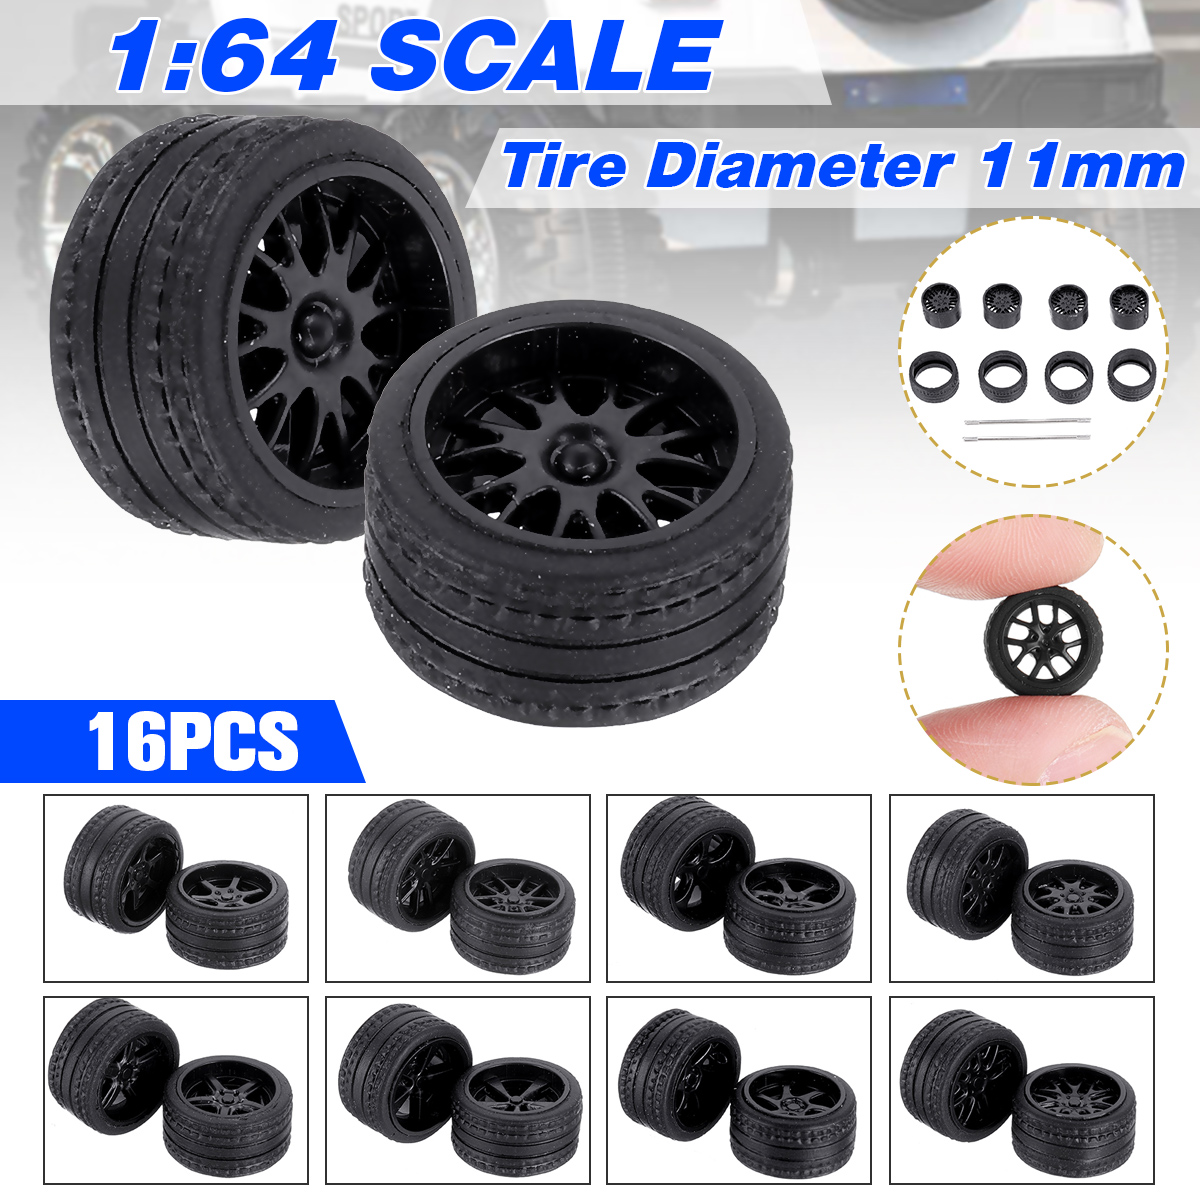 16PCS/Four Boxes 1:64 ABS Rubber Wheels Tire Set Axles Vehicle Wheels Tire Modified Alloy Car Refit Wheels For Vehicle Car Model